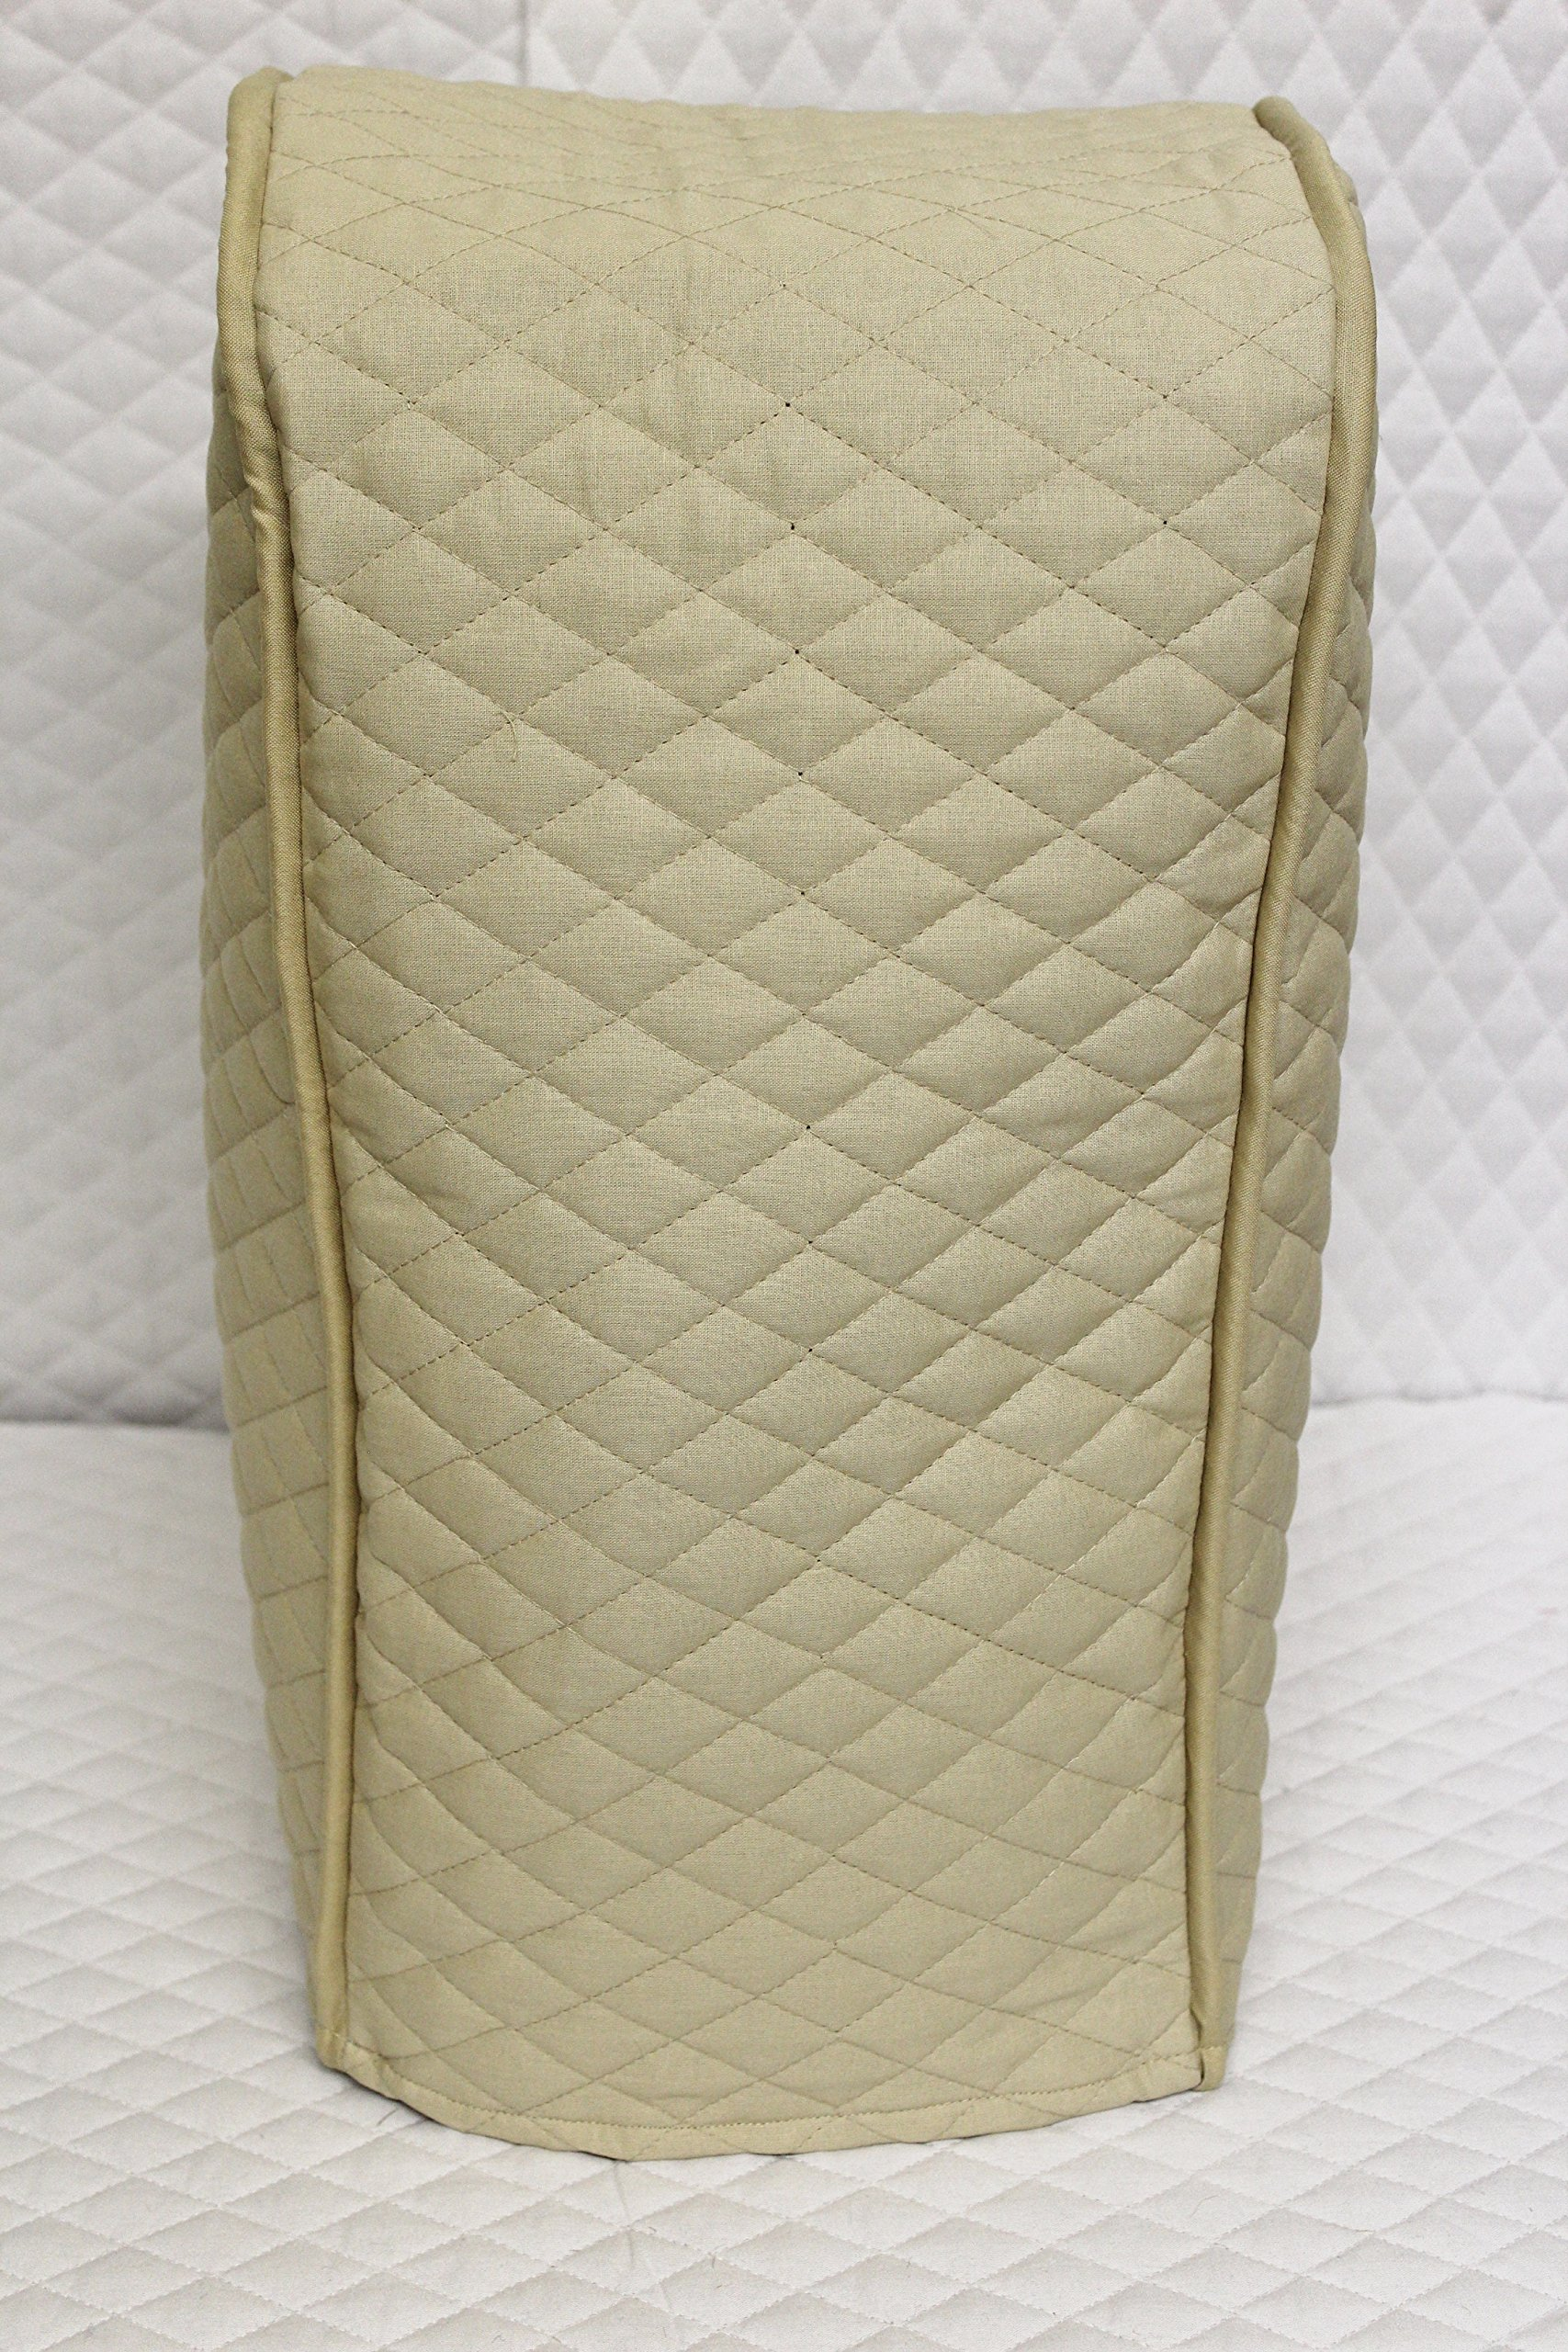 Ninja blender cover - Quilted Double Faced Cotton, Beige